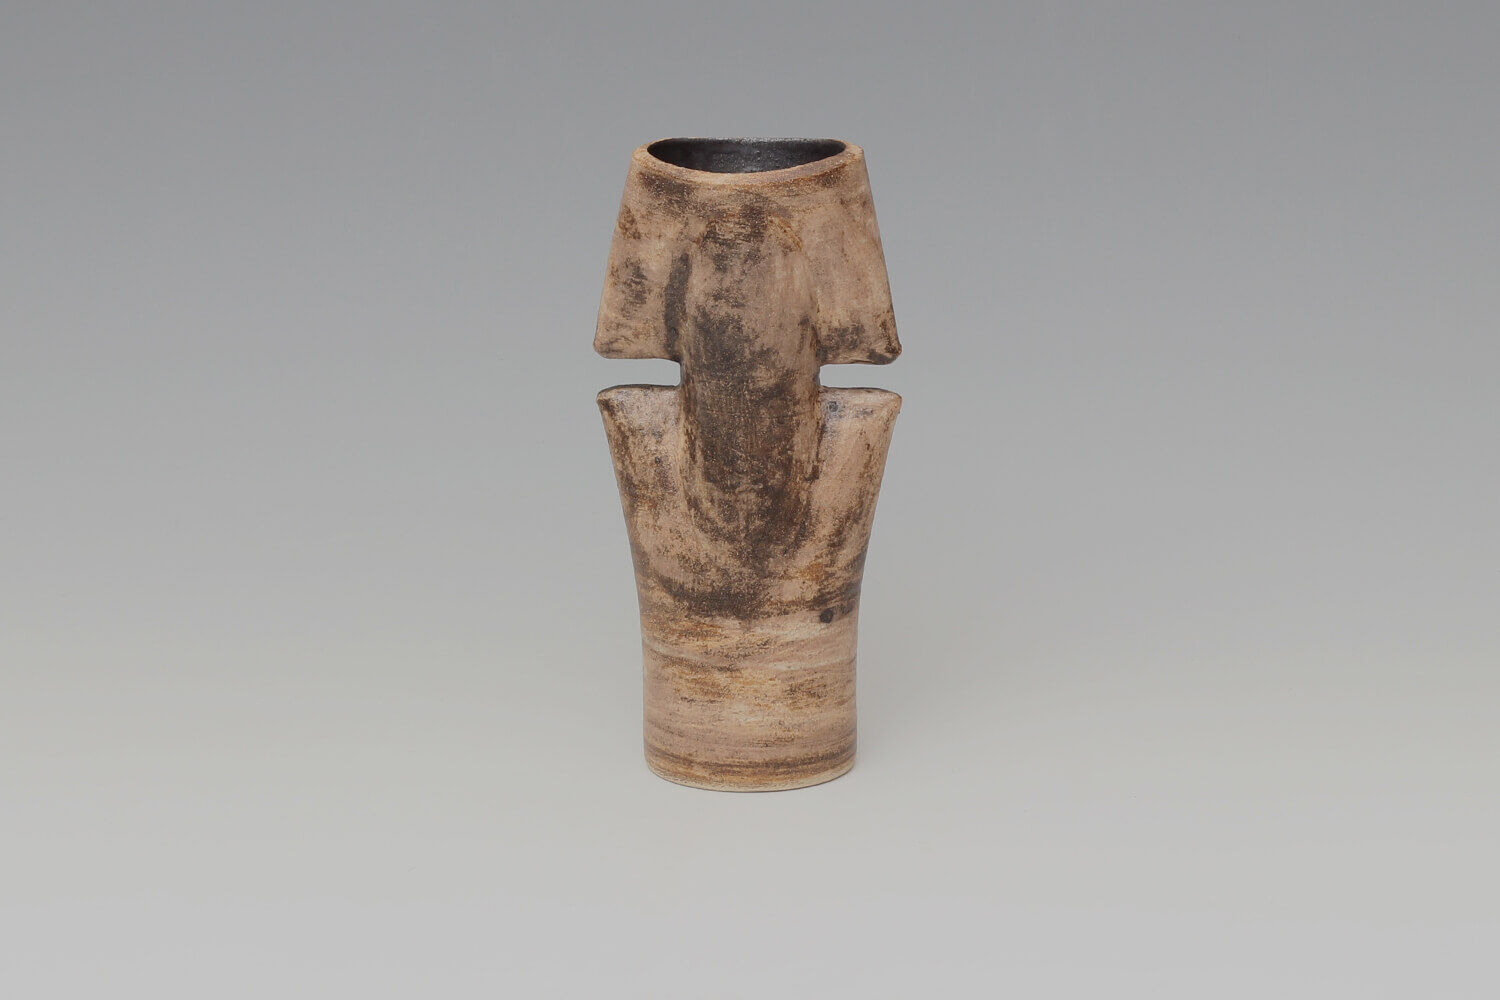 Chris Carter Ceramic Double Totemic Form 148